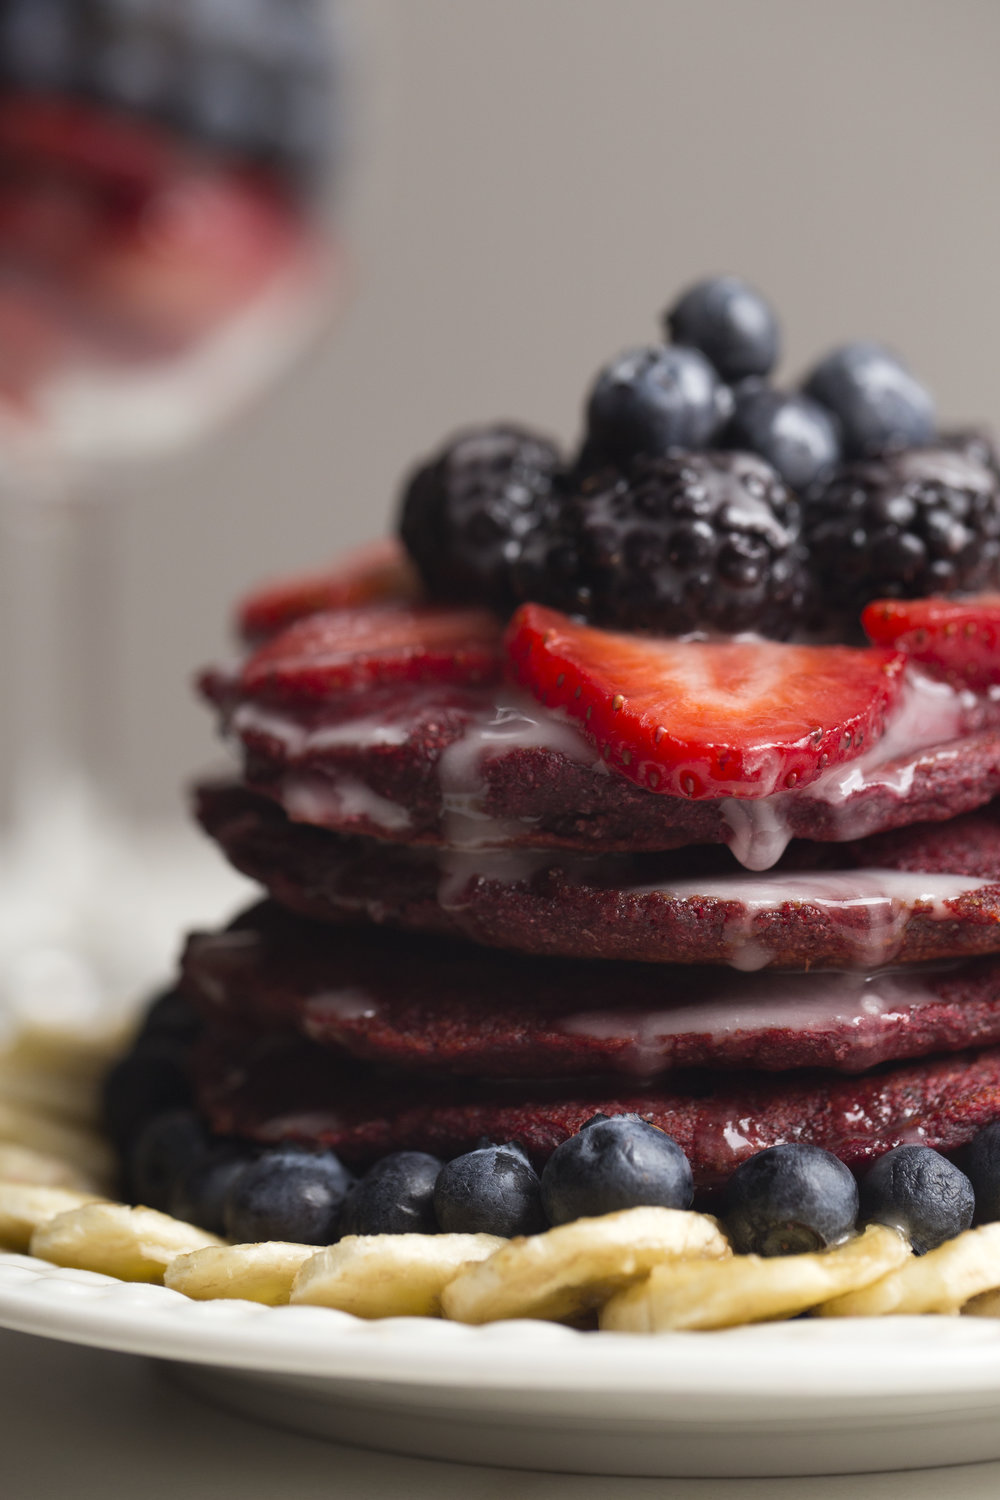 vegan red velvet pancakes covered in a bounty of fresh fruit and homemade icing.